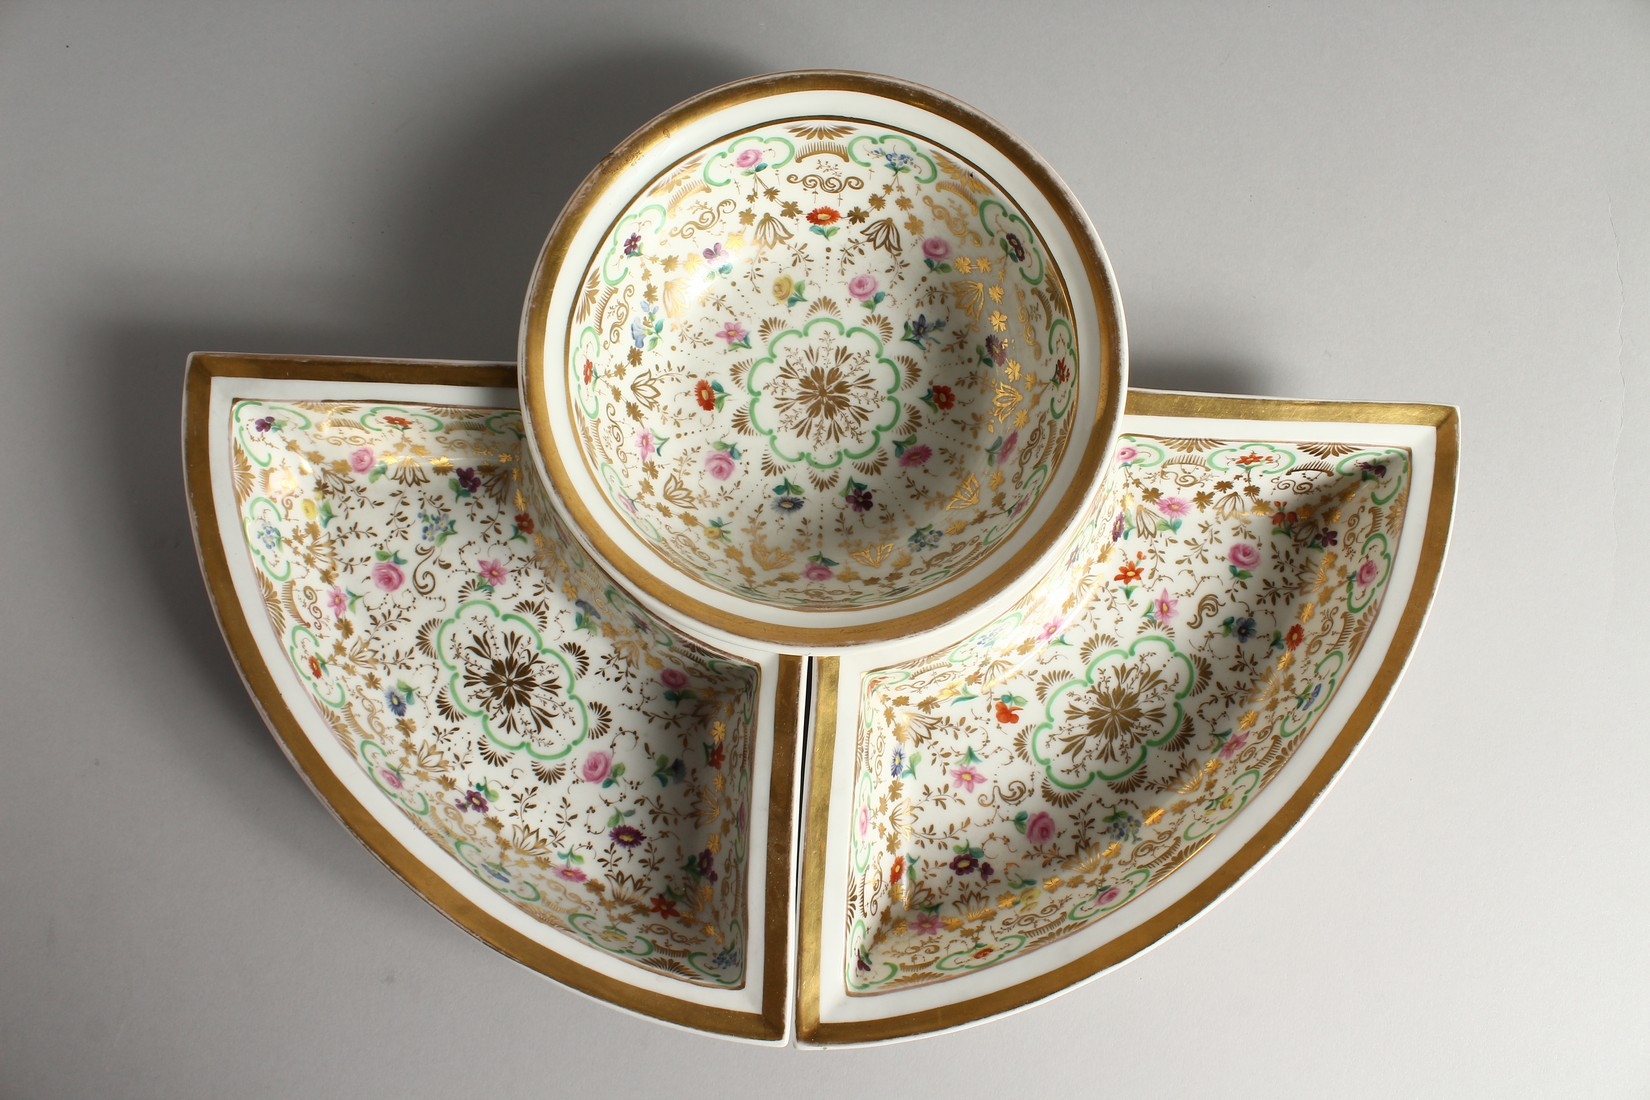 A K. P. M. PORCELAIN CIRCULAR BOWL with gilt decoration and painted with flowers. 7ins diameter - Image 3 of 9